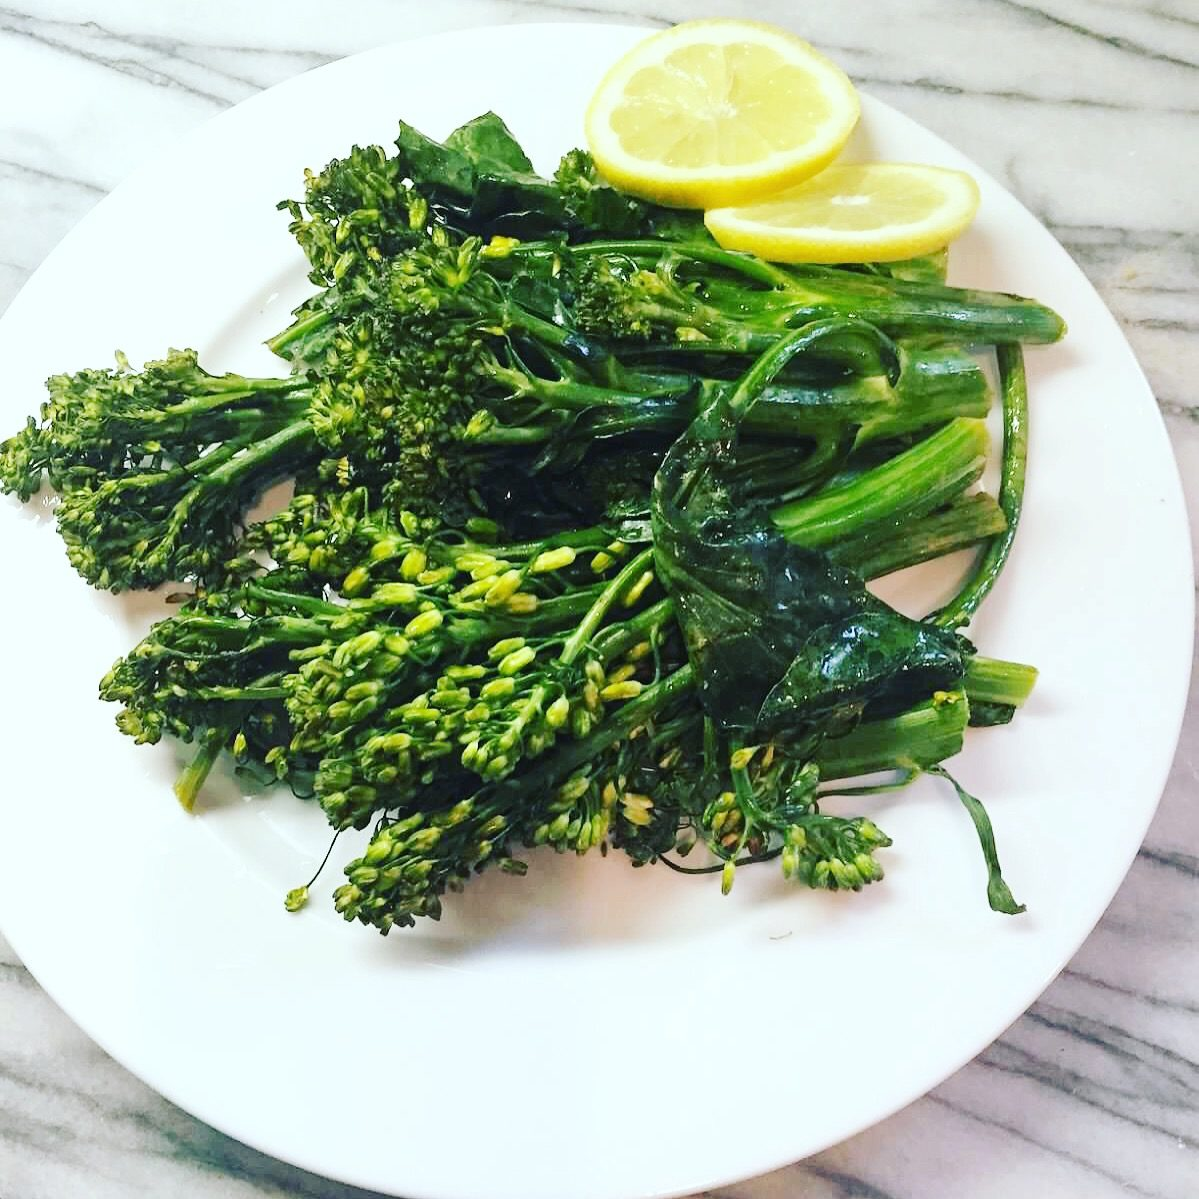 Superfood- Broccoli Family is nutrient dense